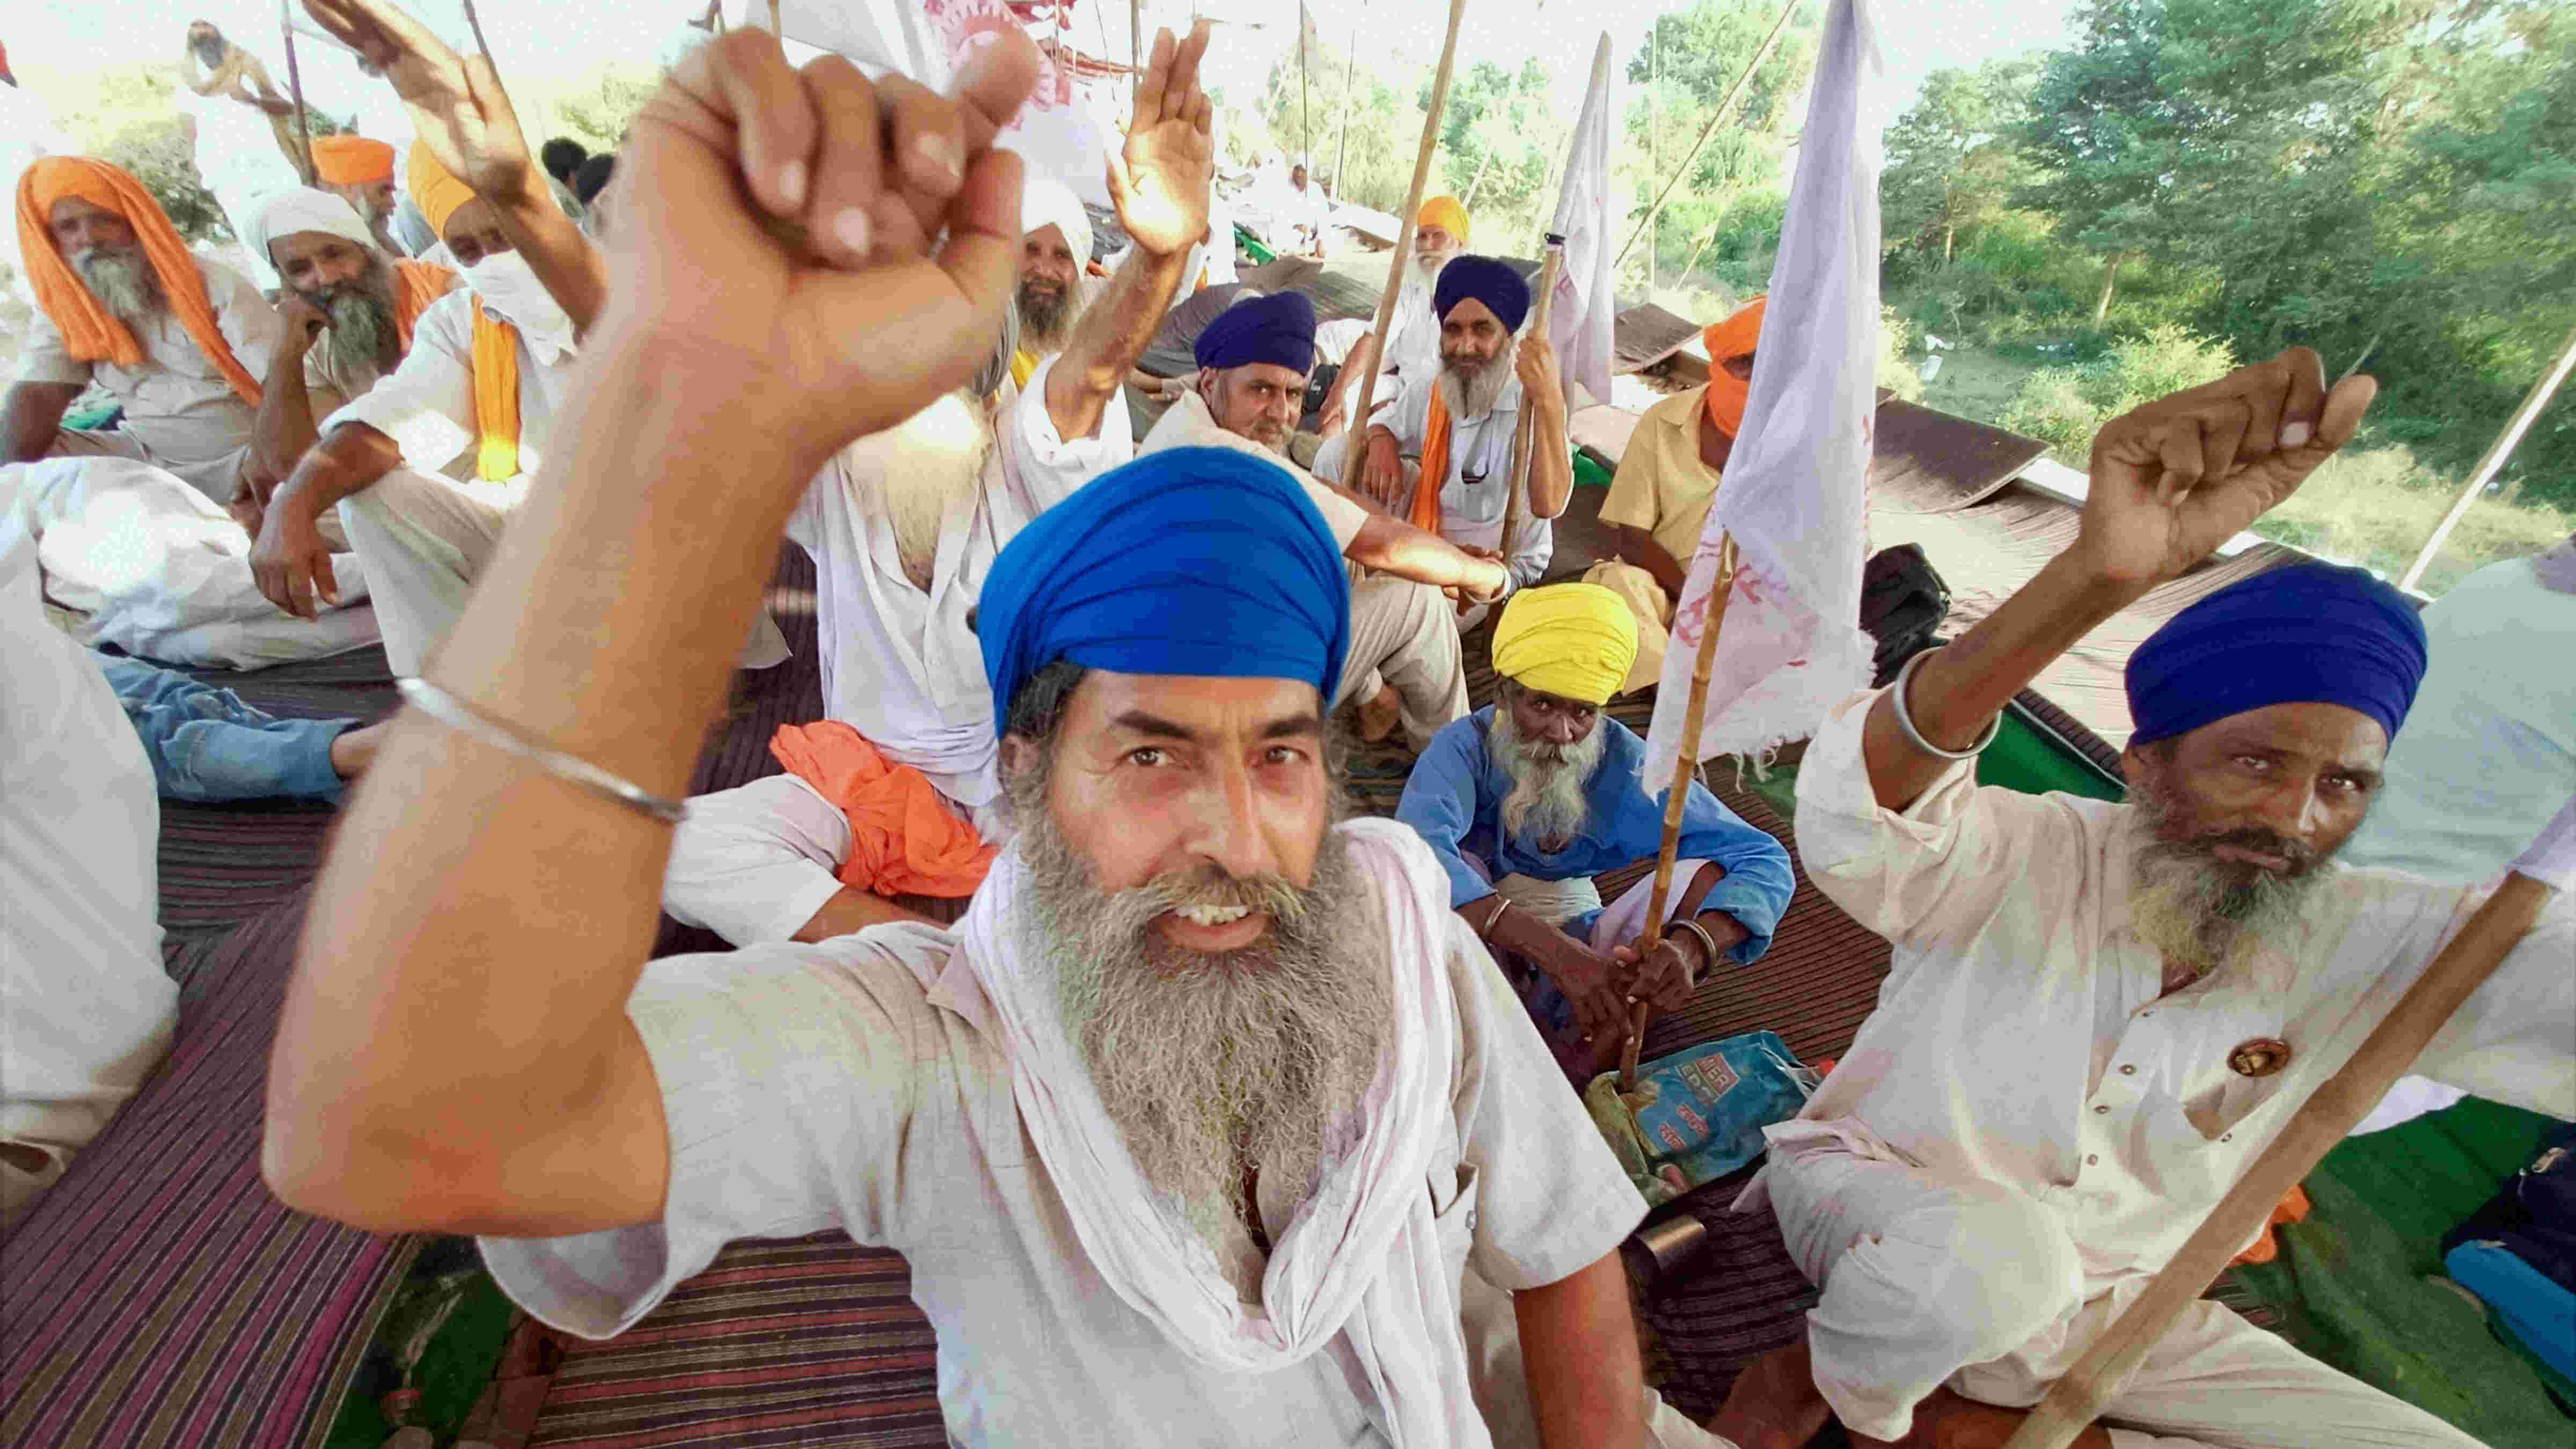 Farmers raise slogans during their ongoing Rail Roko or Stop the Trains agitation, against the central government over newly passed agri-bills, at Devi Dass Pura village, 20km from Amritsar, Tuesday, Sep. 29, 2020.